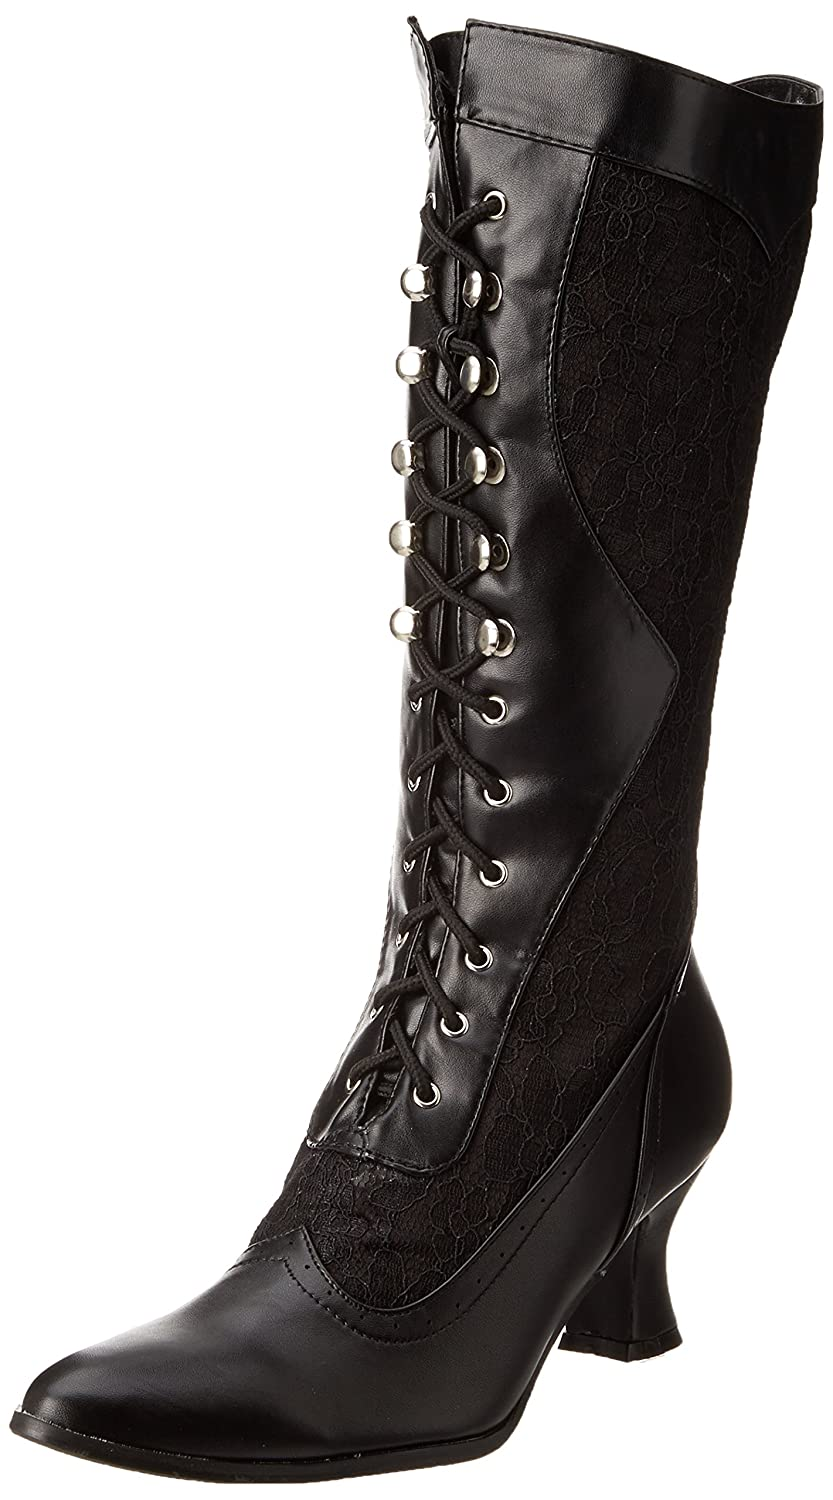 Vintage Boots- Buy Winter Retro Boots Rebecca Lace Heel Boot $52.00 AT vintagedancer.com